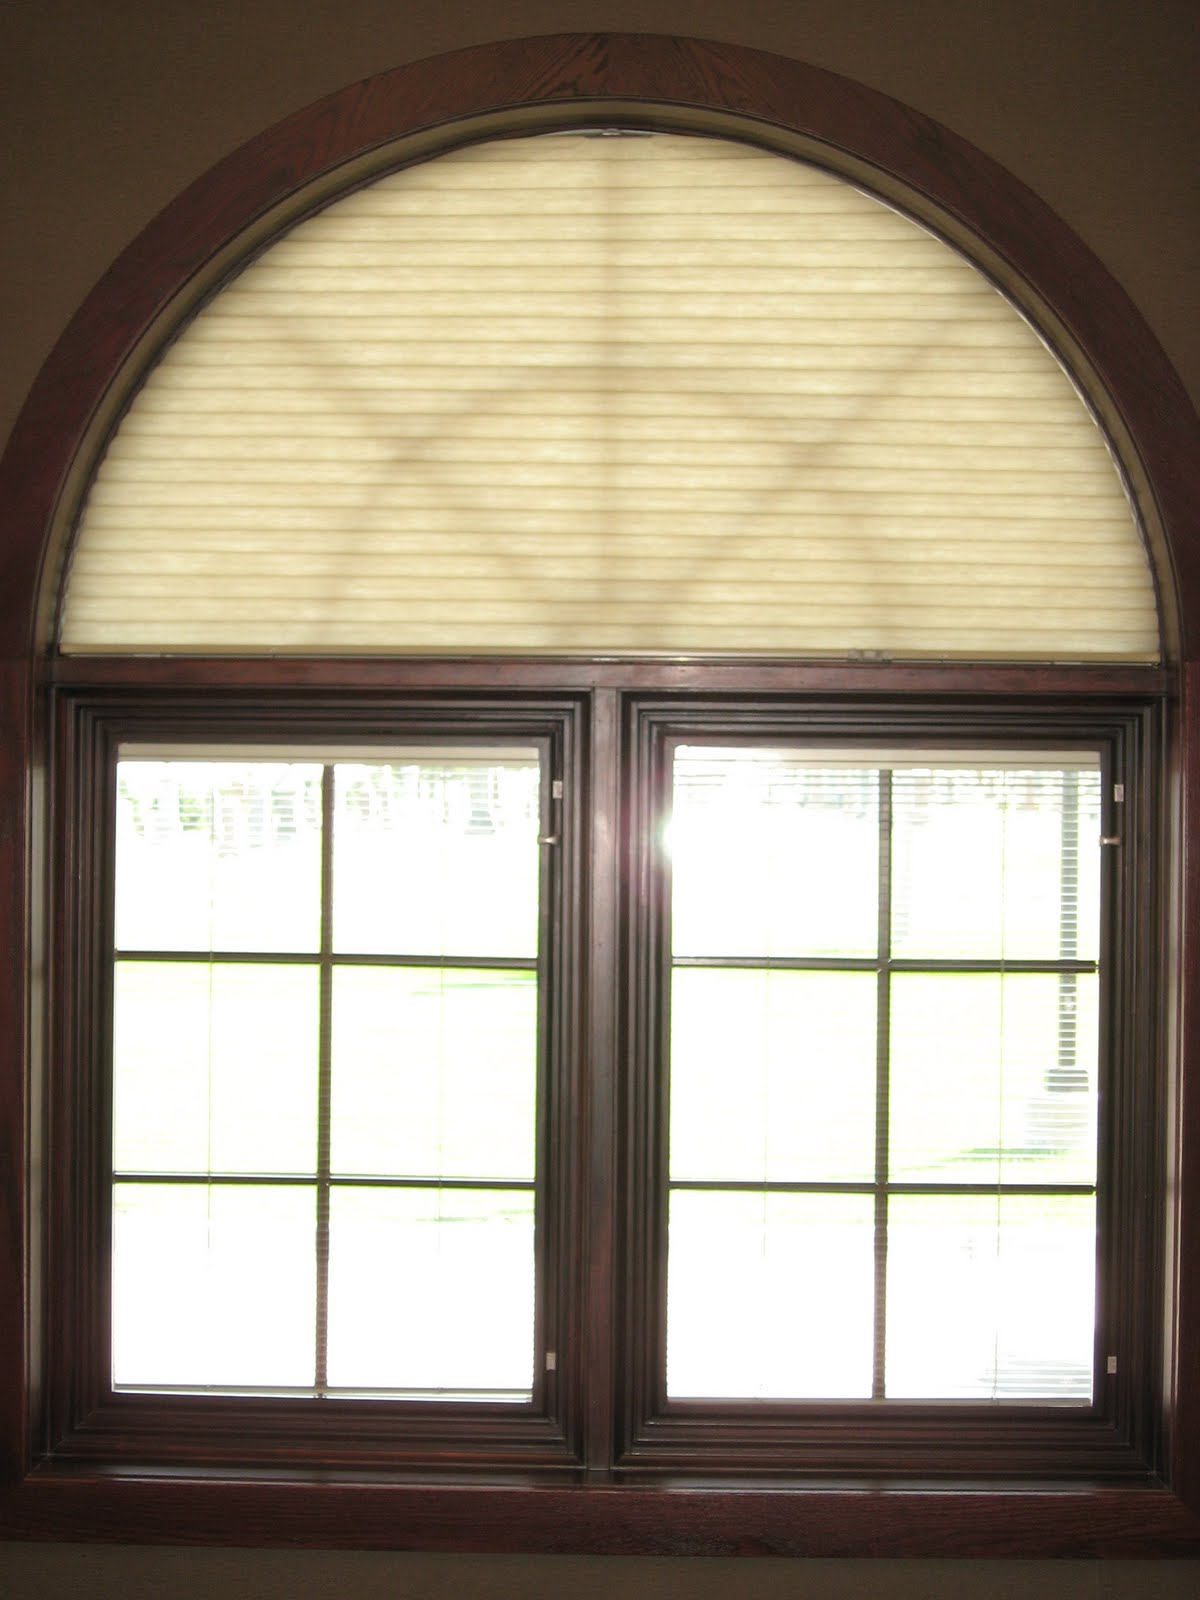 Window fashions duette honeycomb shades easy view arch for Curved windows